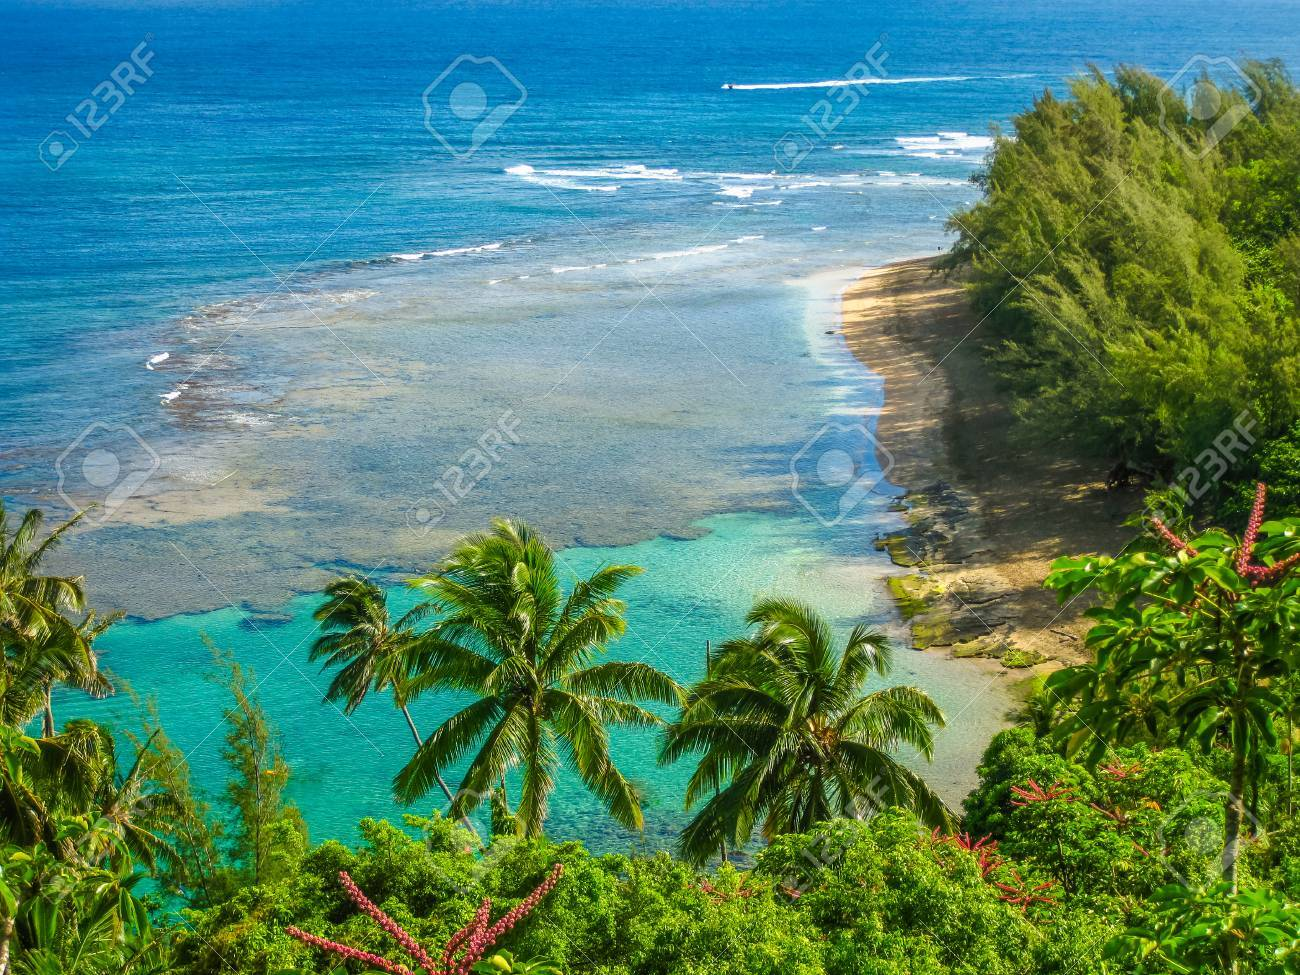 Panoramic view of the famous Kee Beach in Kauai, Hawaii, United States. Stock Photo - 42250229